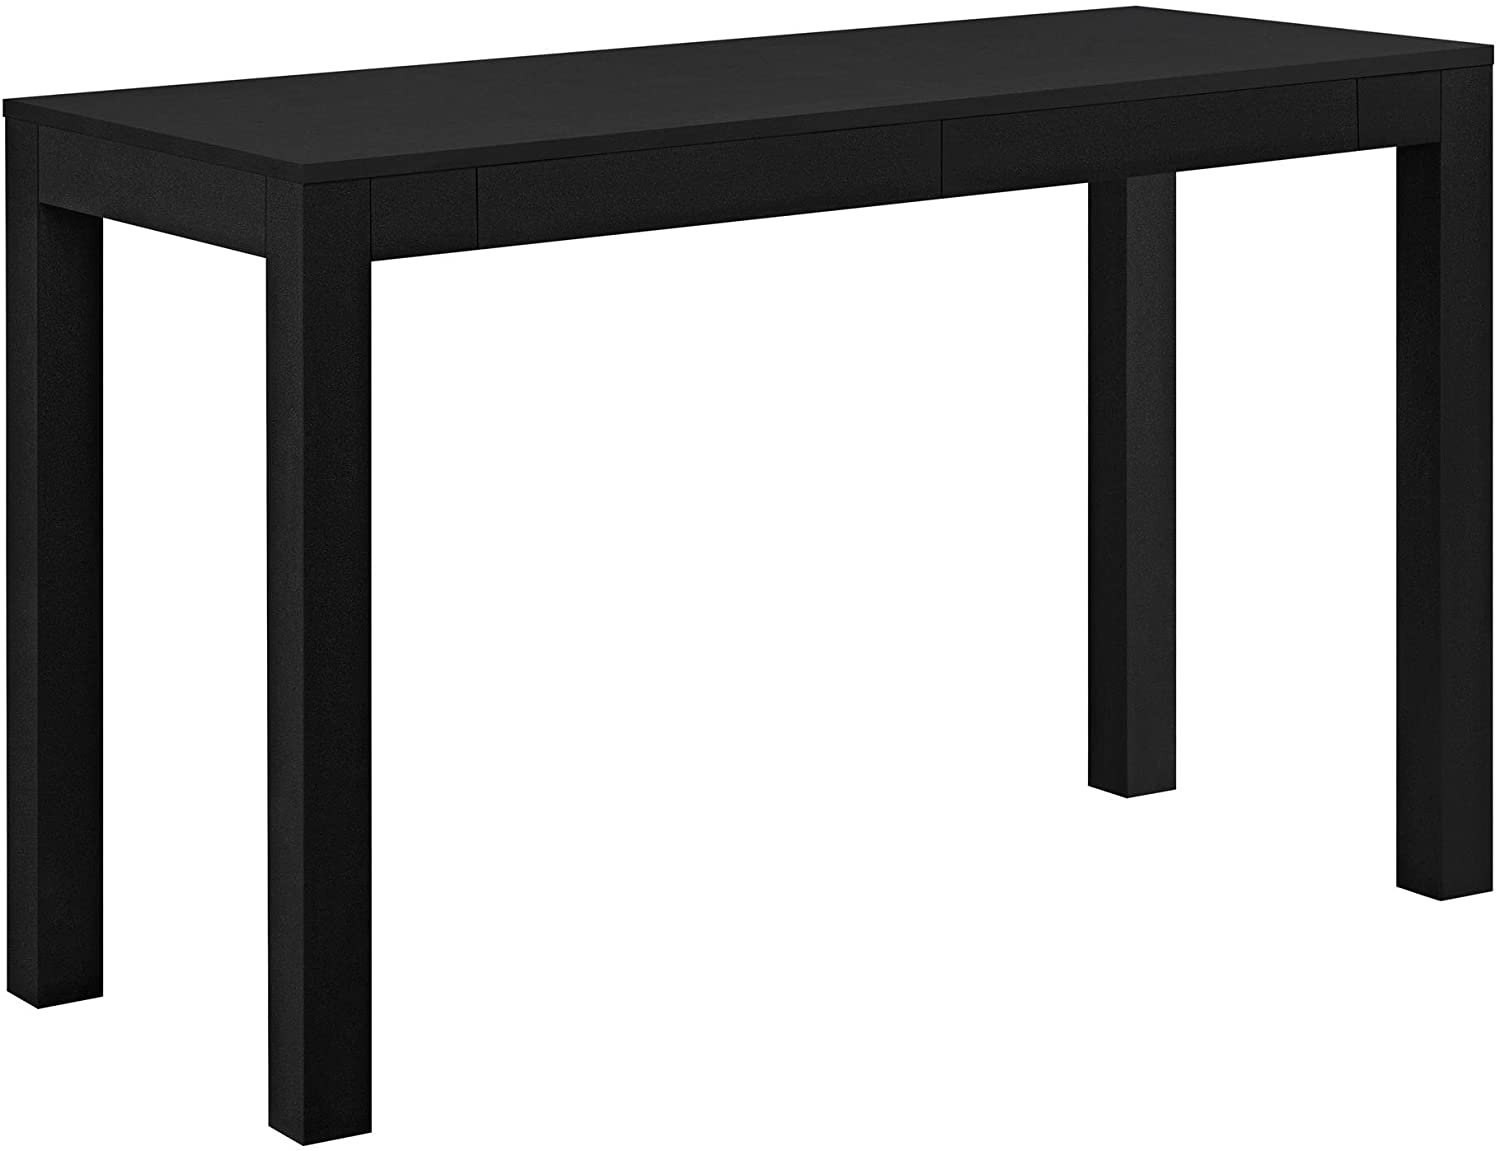 Ameriwood Home Parsons Xl Desk with 2 Drawers, Black